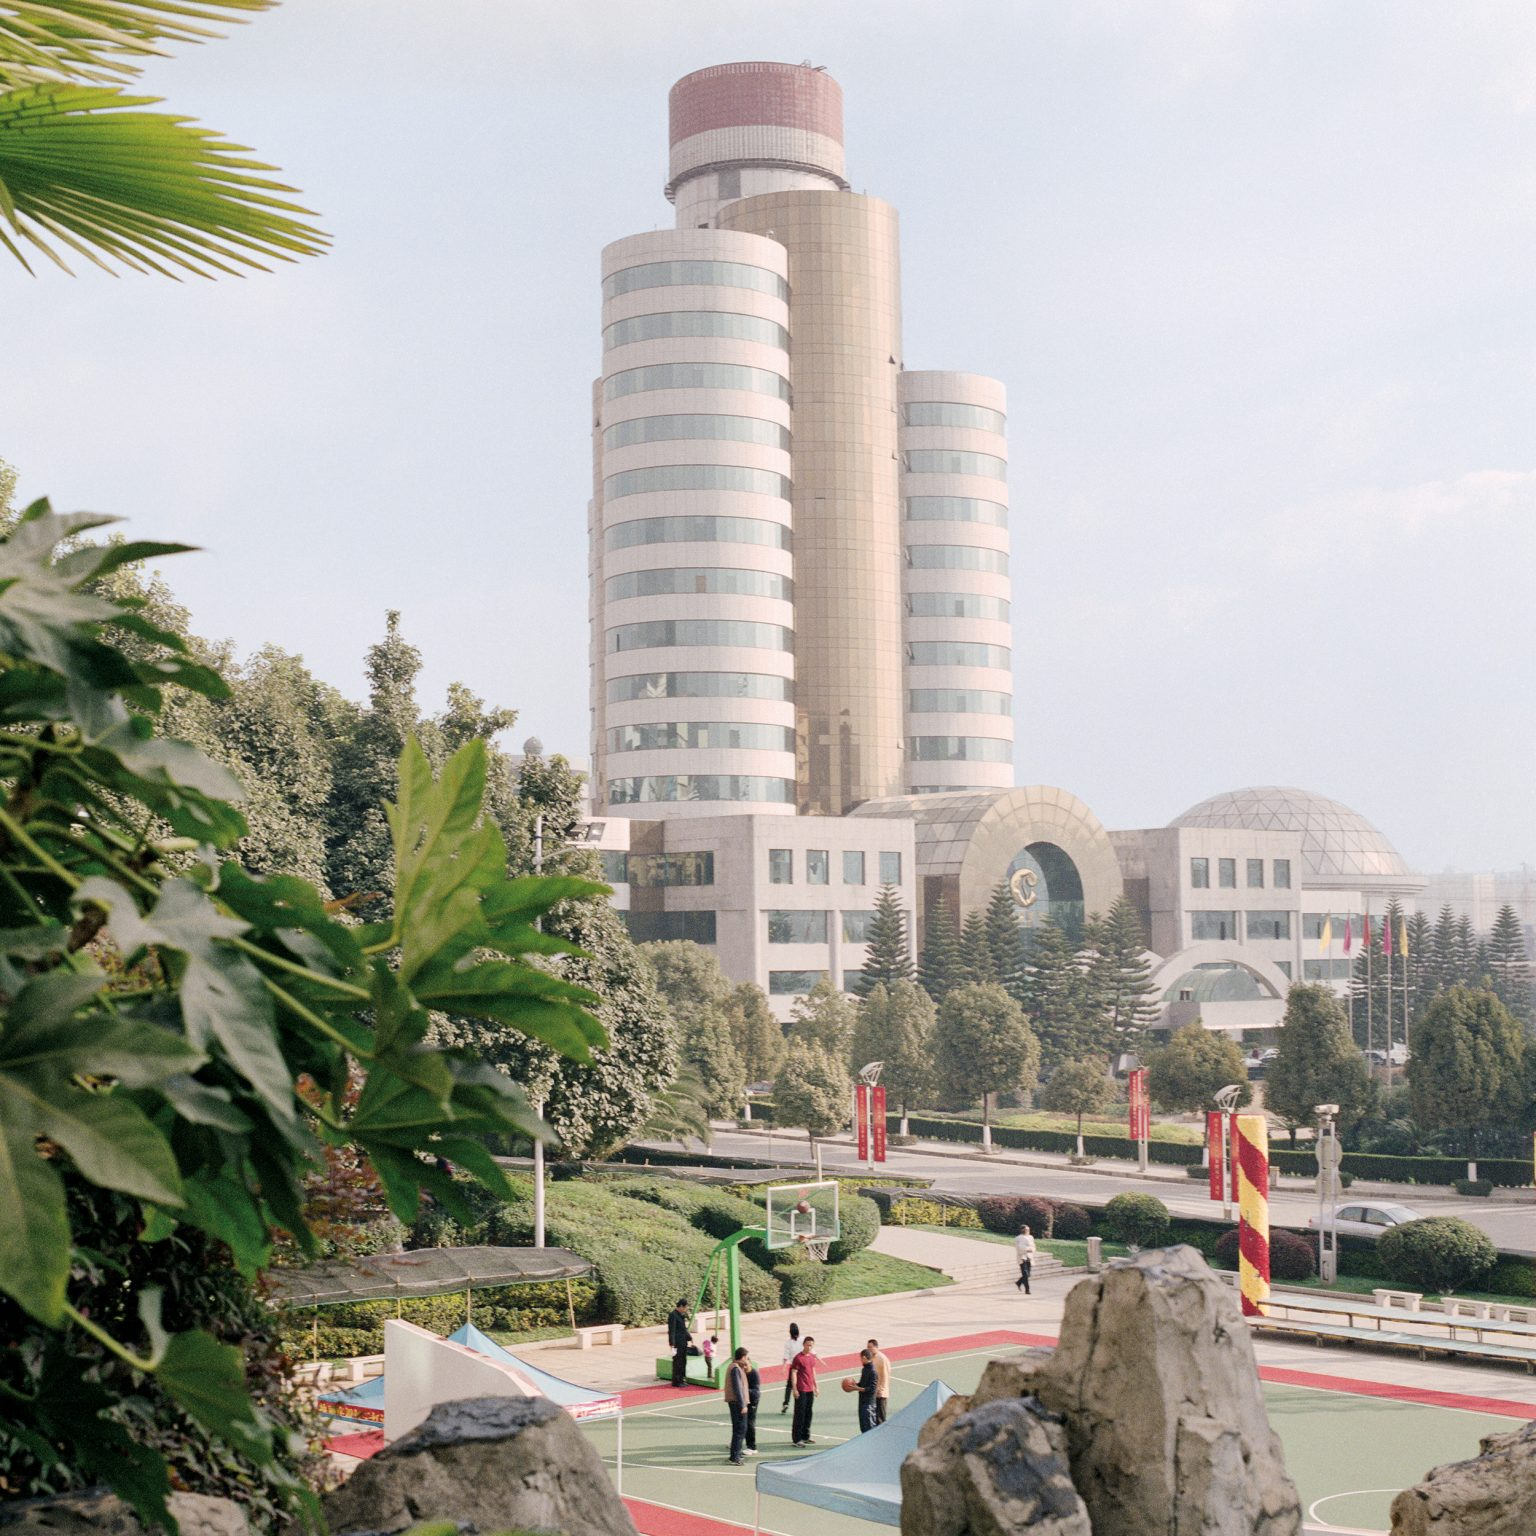 """Kunming, China. The headquarters of the Kunming Tobacco factory. Benefits and corporate welfare for company workers are such that a job in Honghe is regarded as very prestigious.   The factory belongs to Honghe Tobacco Company, part of the Honyun Honghe Group. With the production of 230 billion cigarettes per year, the group represents the world's fourth-largest producer after Philip Morris International Inc., British American Tobacco PLC and Japan Tobacco Inc. in terms of production volume and annual revenues of more than USD 6 billion. The group is the result of the recent merging of two companies, and possesses production facilities in Yunnan and the northwestern Xinjiang region.  China's State Tobacco Monopoly Administration is encouraging tobacco companies to merge and benefit from economy of scale. The industry's umbrella state-owned monopoly company, China National Tobacco Corp., is planning to form 10 major tobacco companies throughout the country through mergers.  Honghe controls 60% of Yunnan's cigarette market. An anonymous informant interviewed by the Author affirms that the company recently introduced Jia Zi and Win (""""Kiss"""") to attract more female consumers. The percentage of male smokers in China is beginning to decrease from a high of about 60%, while the percentage of female smokers remains, for now, very low."""